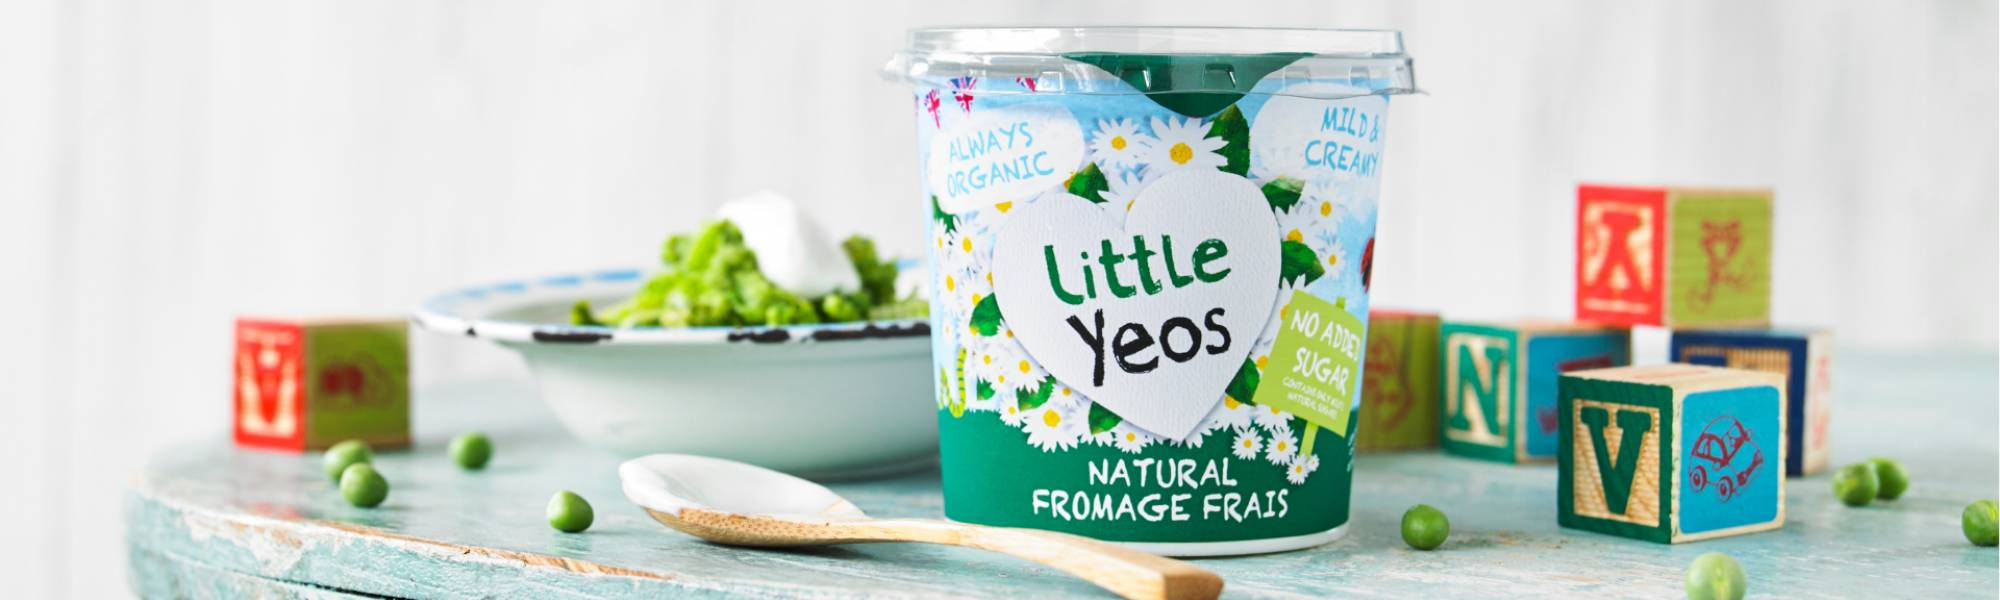 use Little Yeos natural as a dip